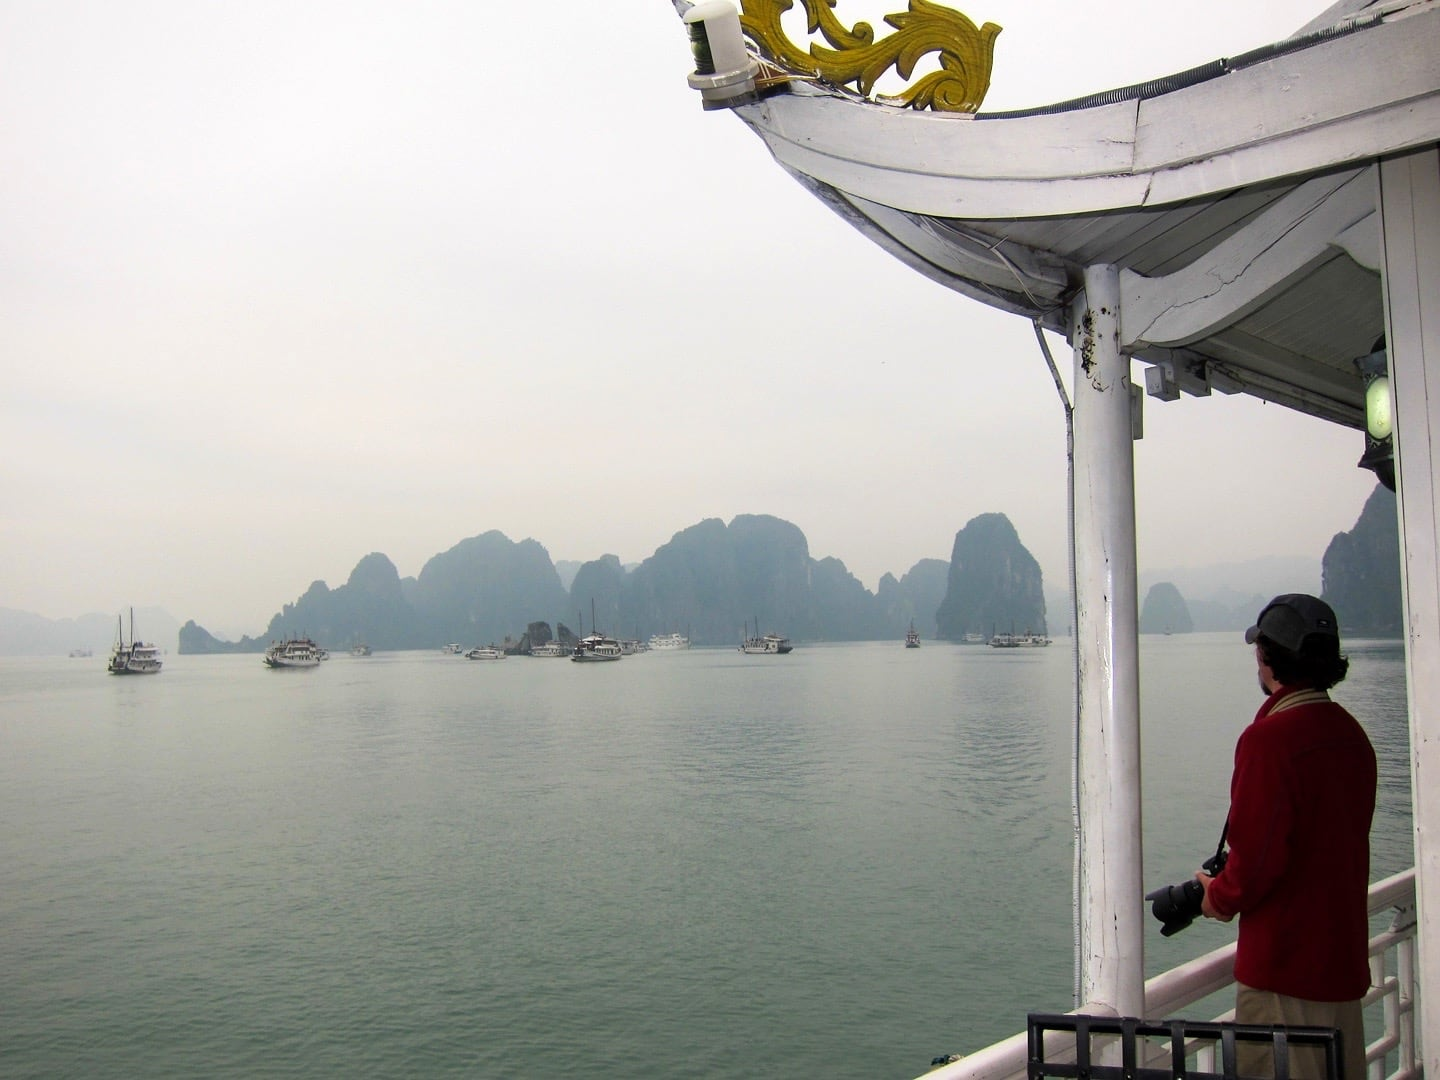 halong bay unesco world heritage site